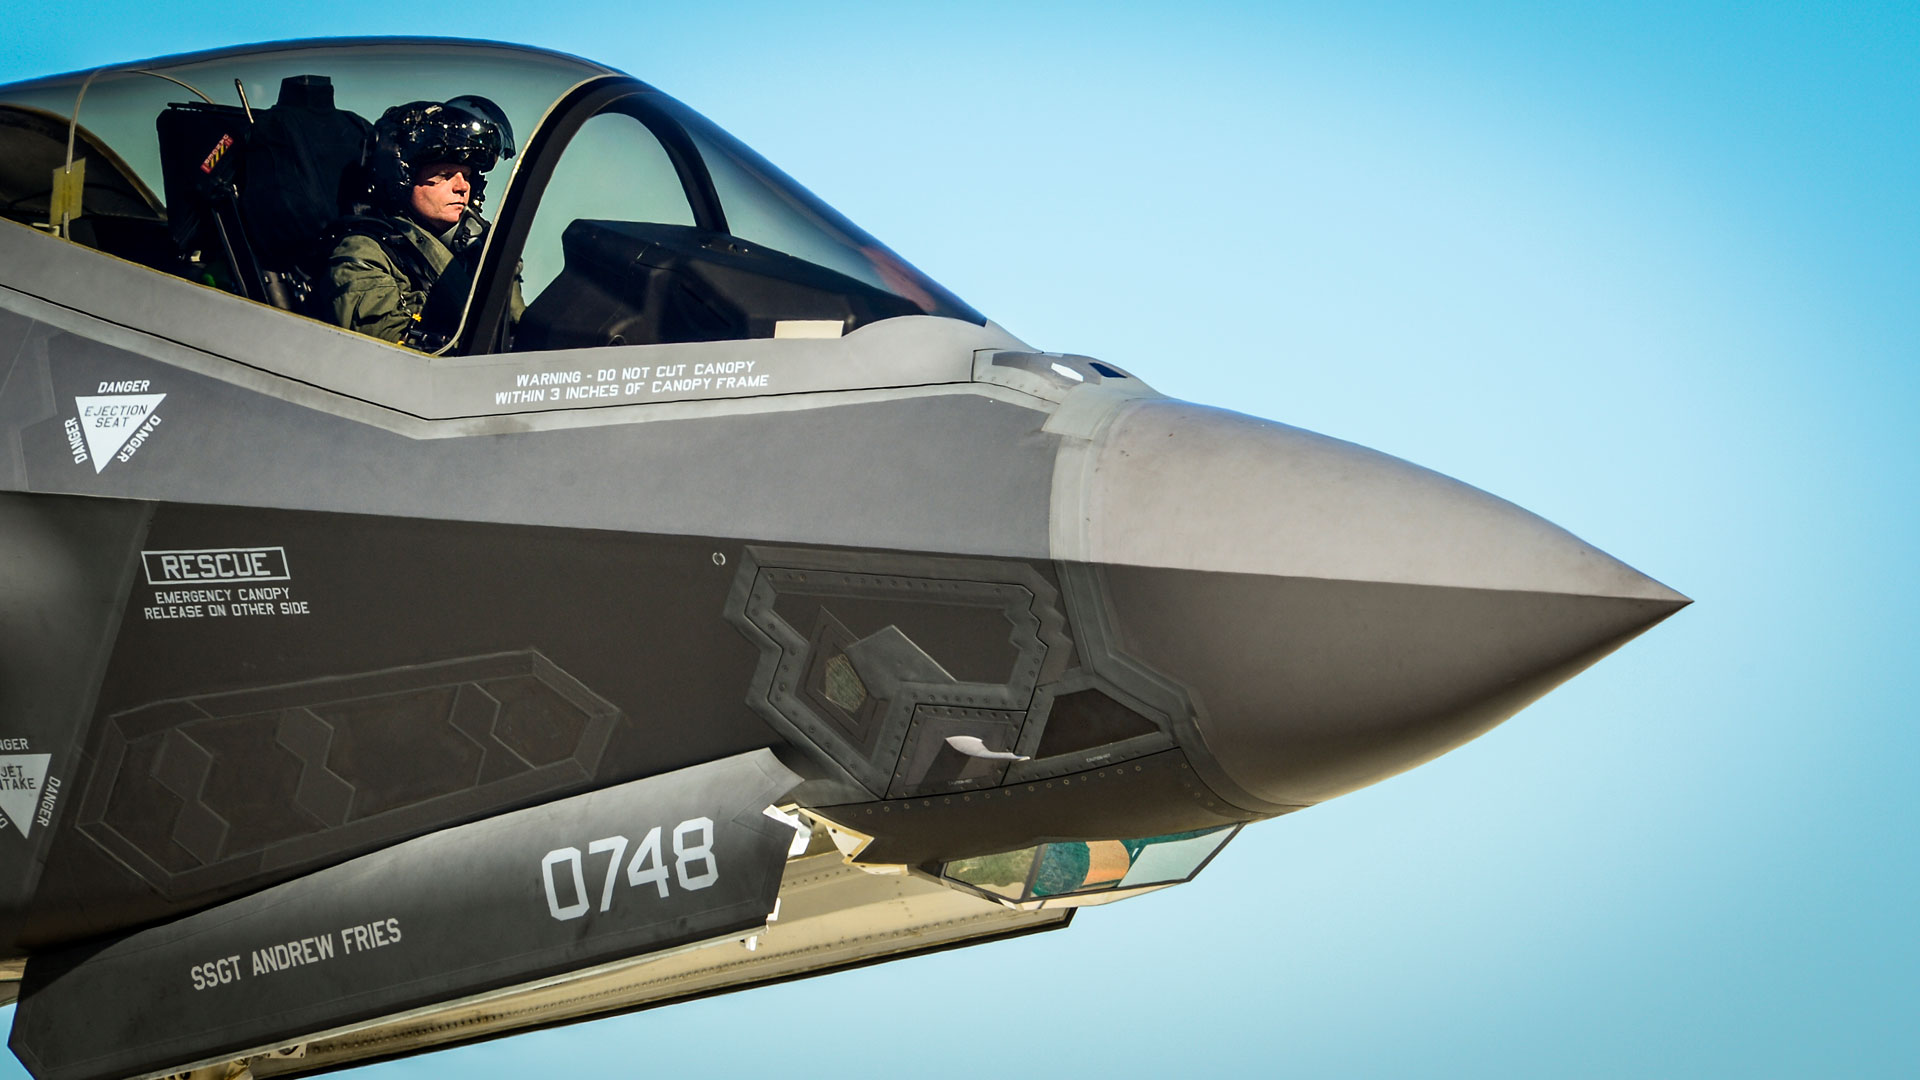 SSGT Andrew Fries F-35